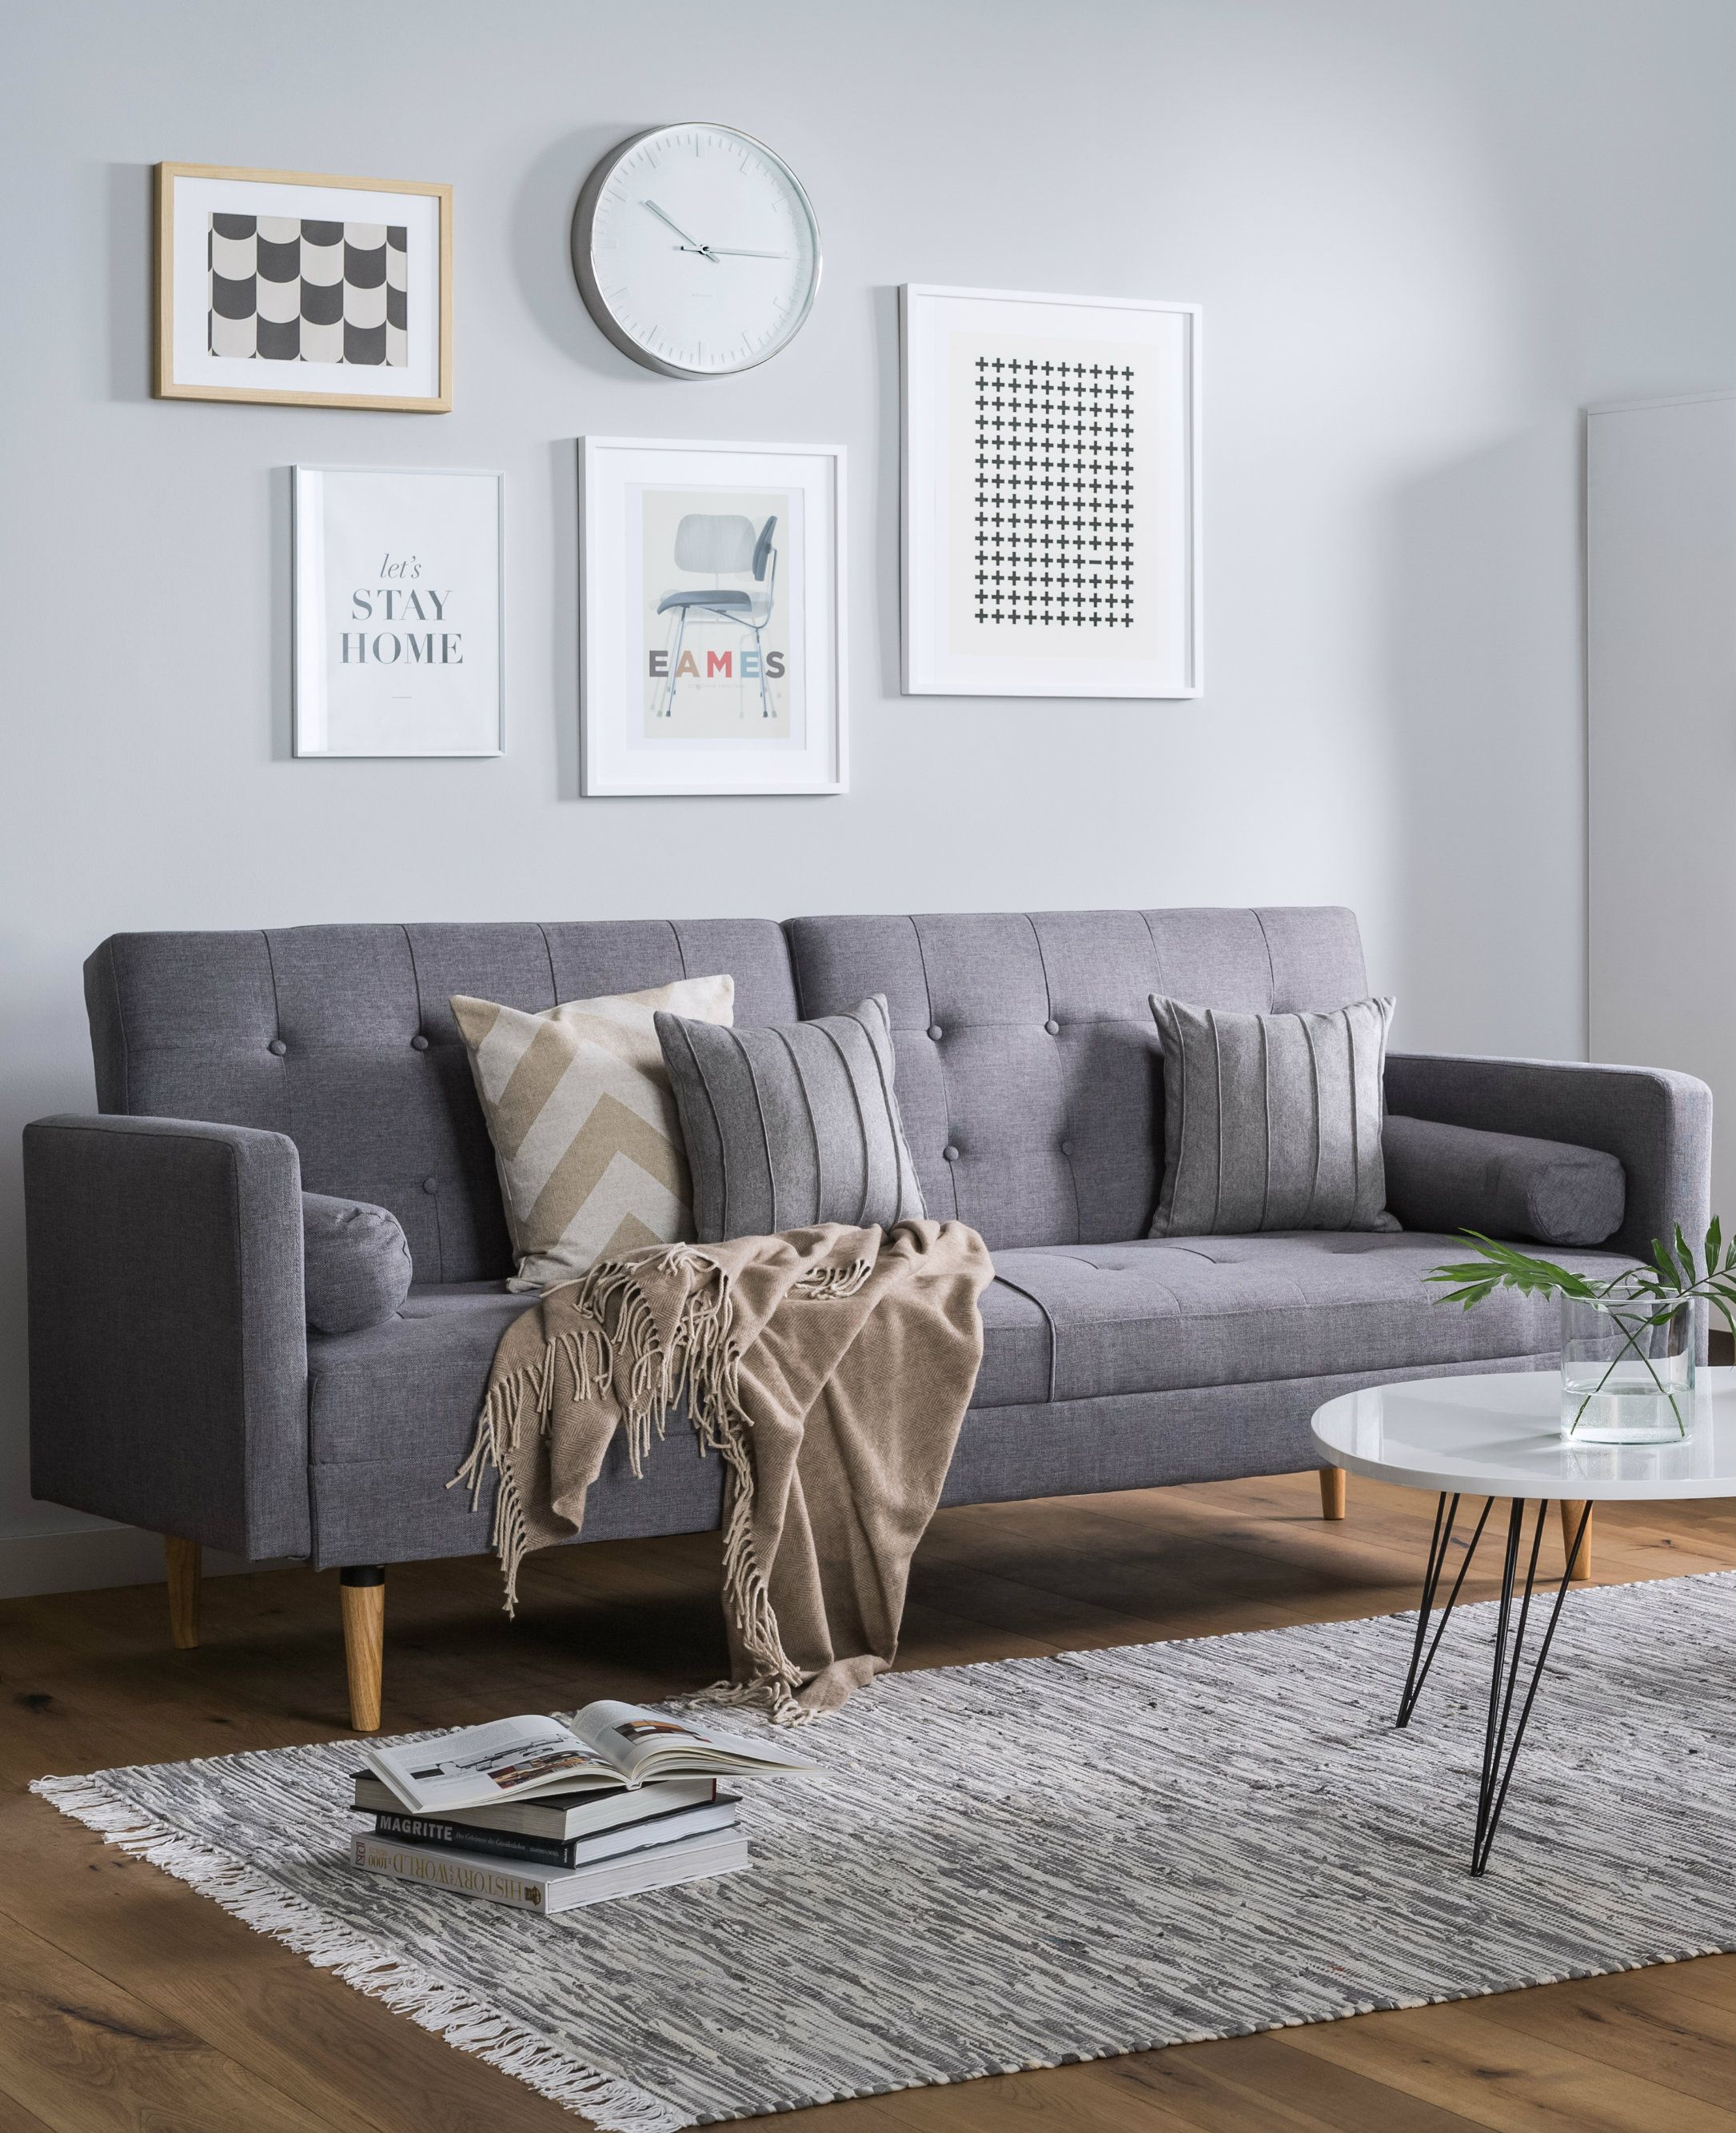 The Ideal Choice For Your Den Come Guest Room Or Living Area This Urban Sofa Effortlessly Converts Into A Bed When You Re Hosting Friends Family